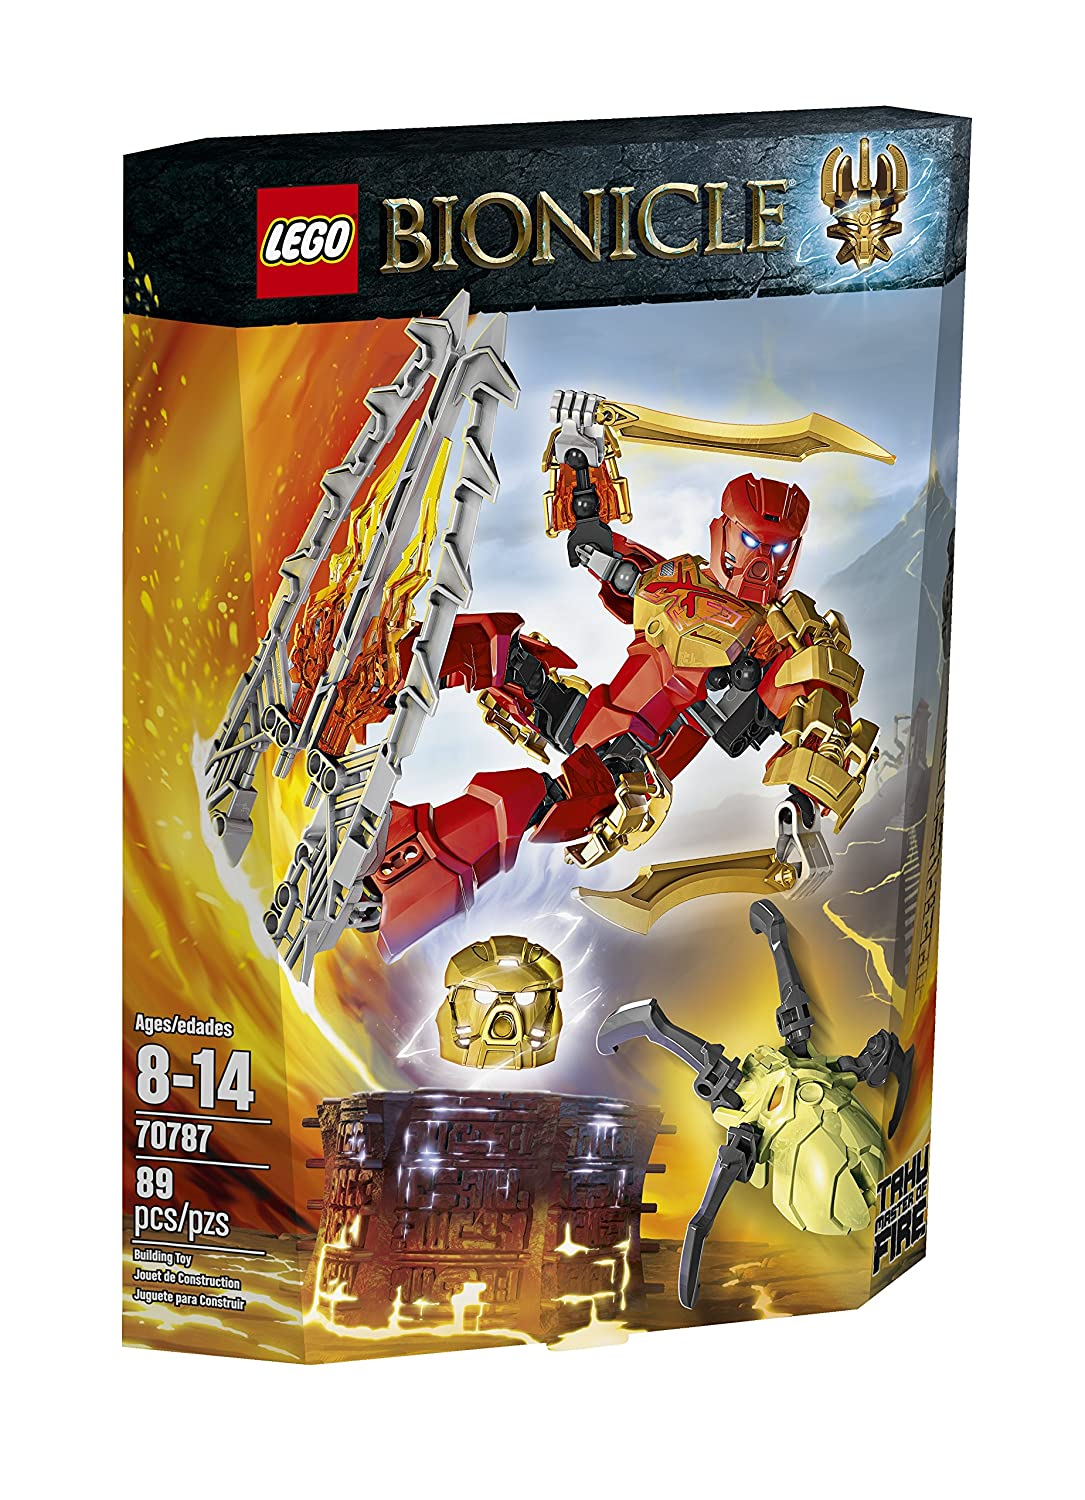 Top 15 Best Lego BIONICLE Sets Reviews in 2020 12